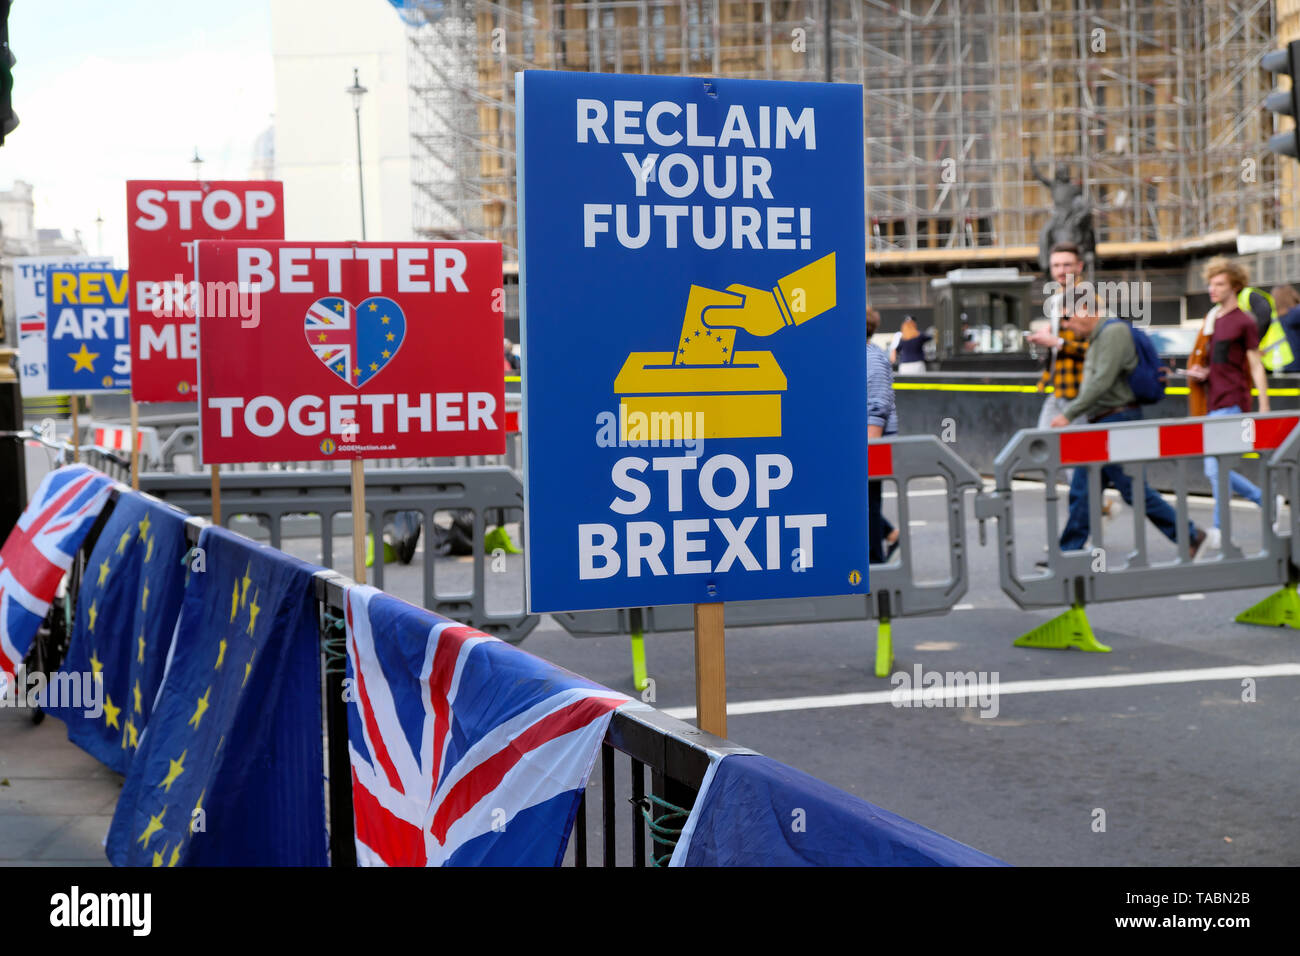 RECLAIM YOUR FUTURE, STOP BREXIT, BETTER TOGETHER heart and EU BREXIT STOP THE BREXIT MESS remain posters placards and flags and banners on barriers in the street outside the Houses of Parliament in Westminster London England UK 21 May 2019  KATHY DEWITT - Stock Image